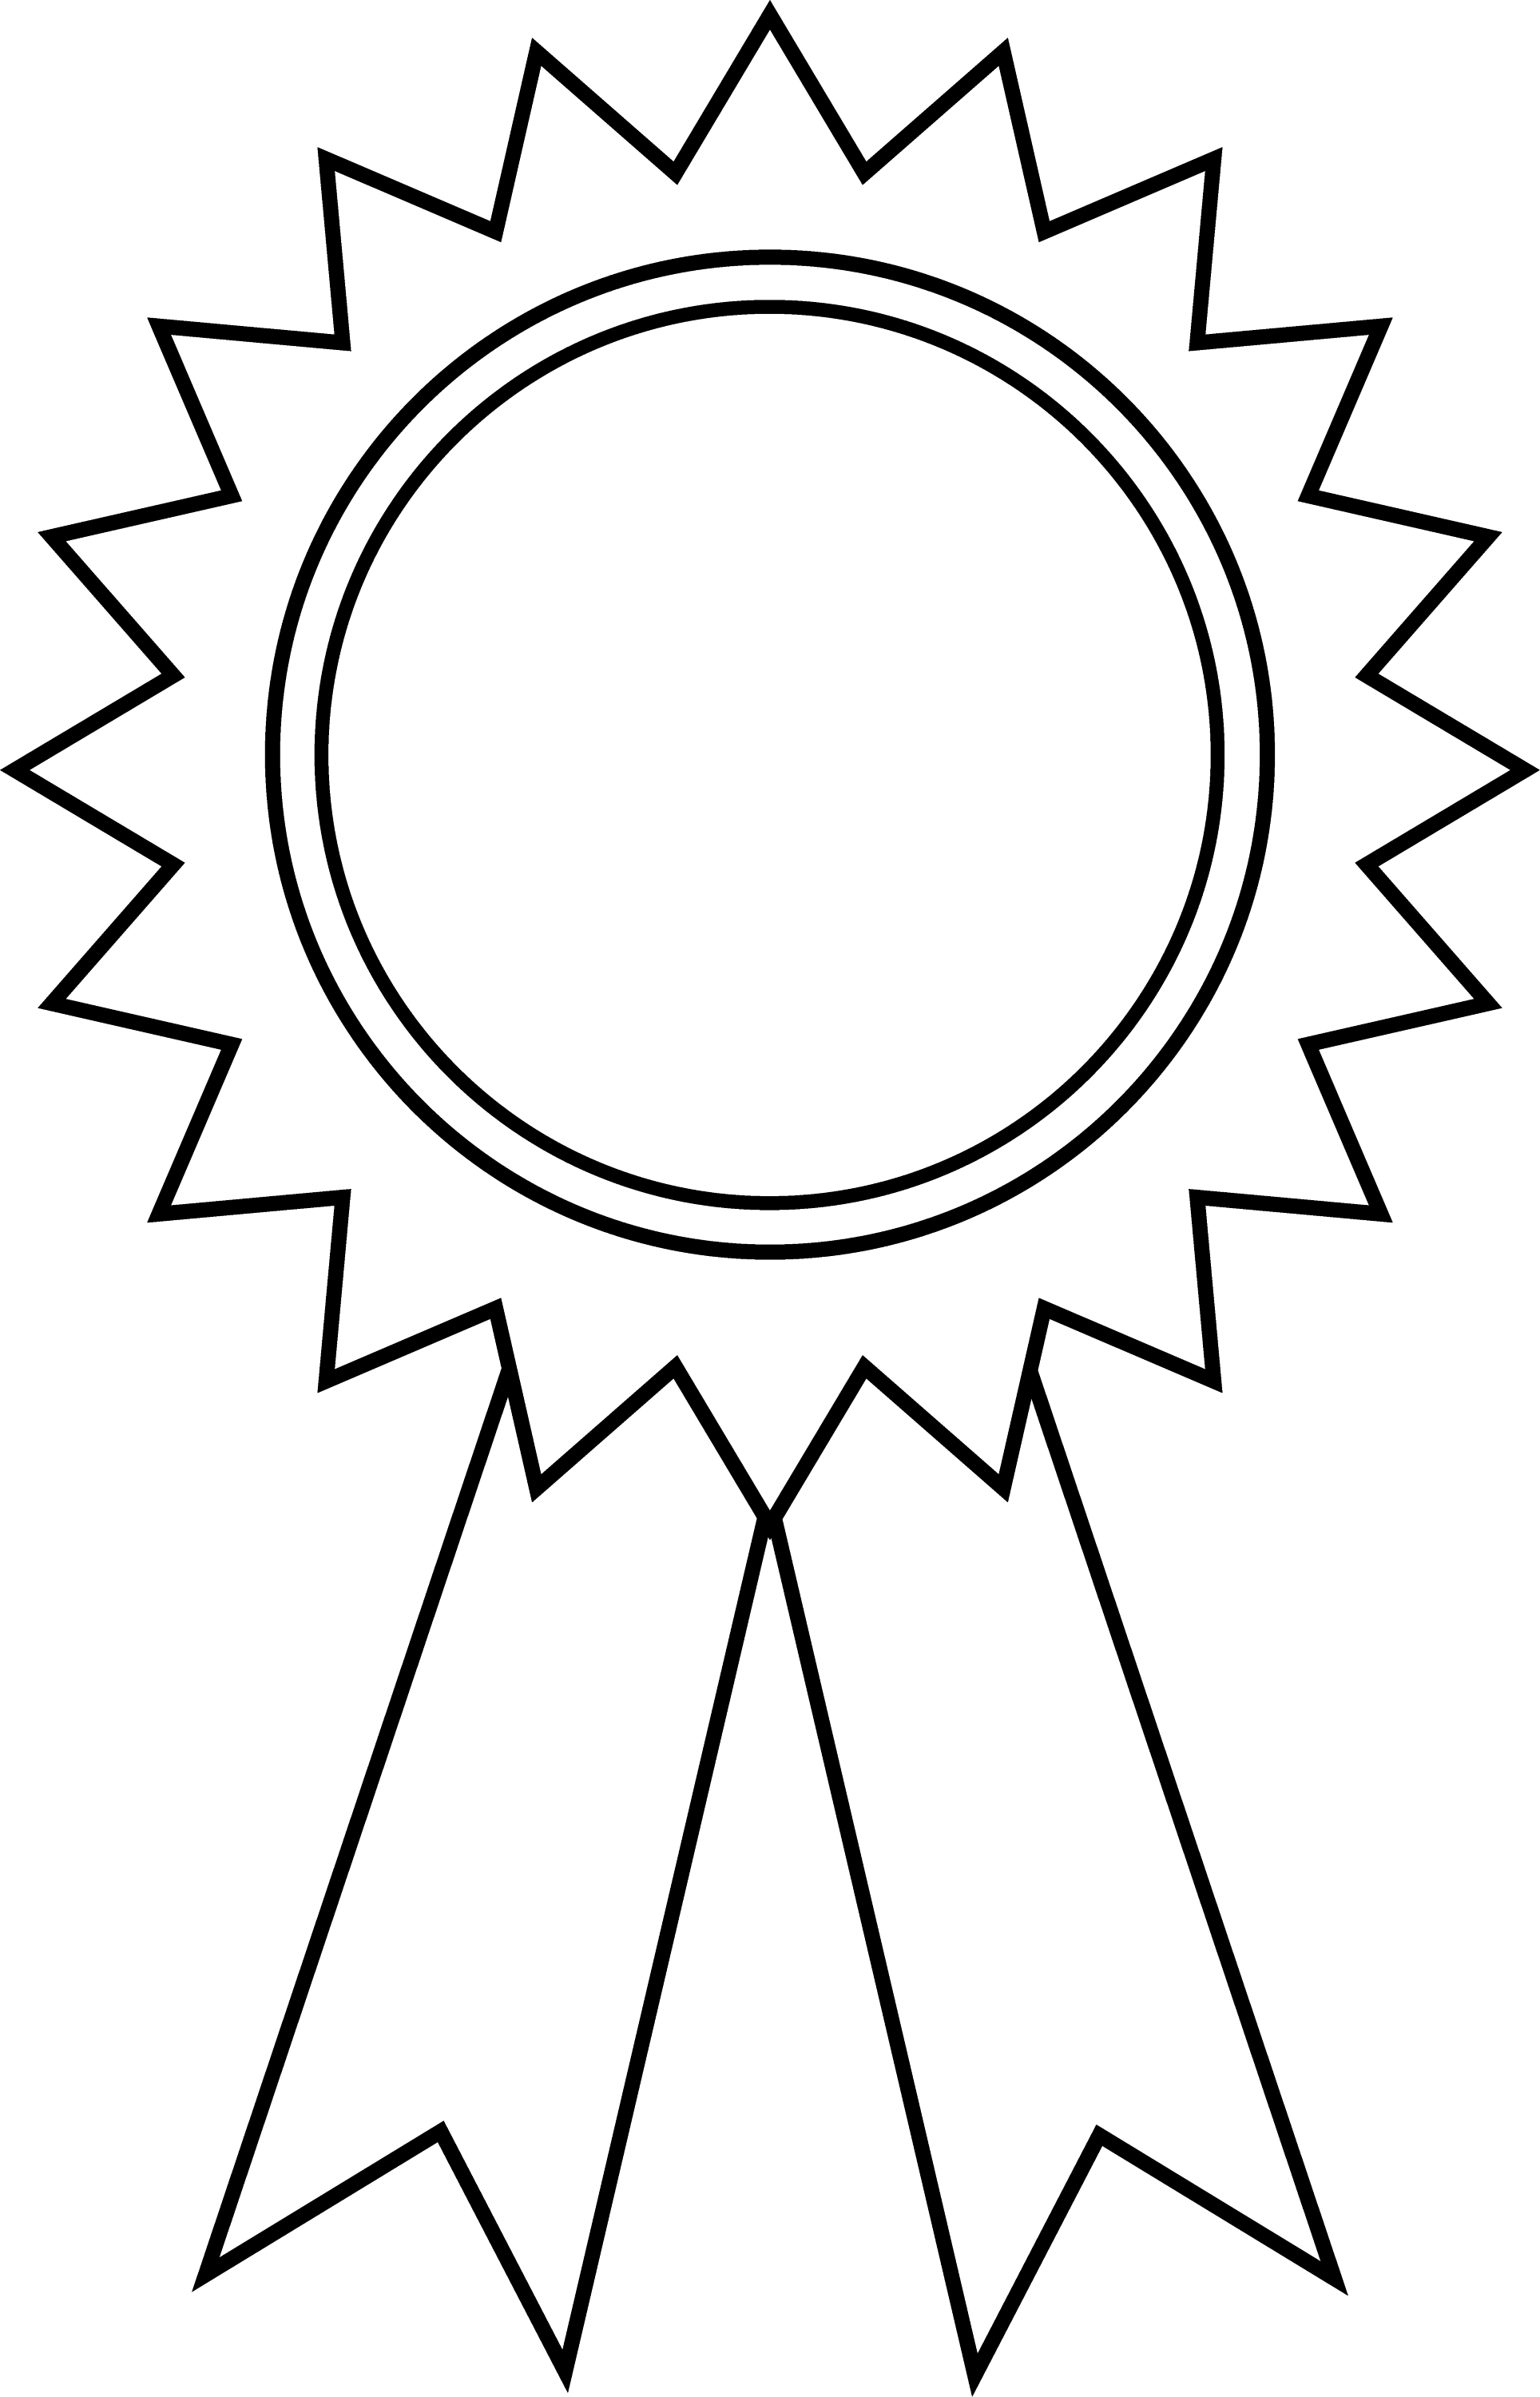 childrens awards coloring pages - photo#3